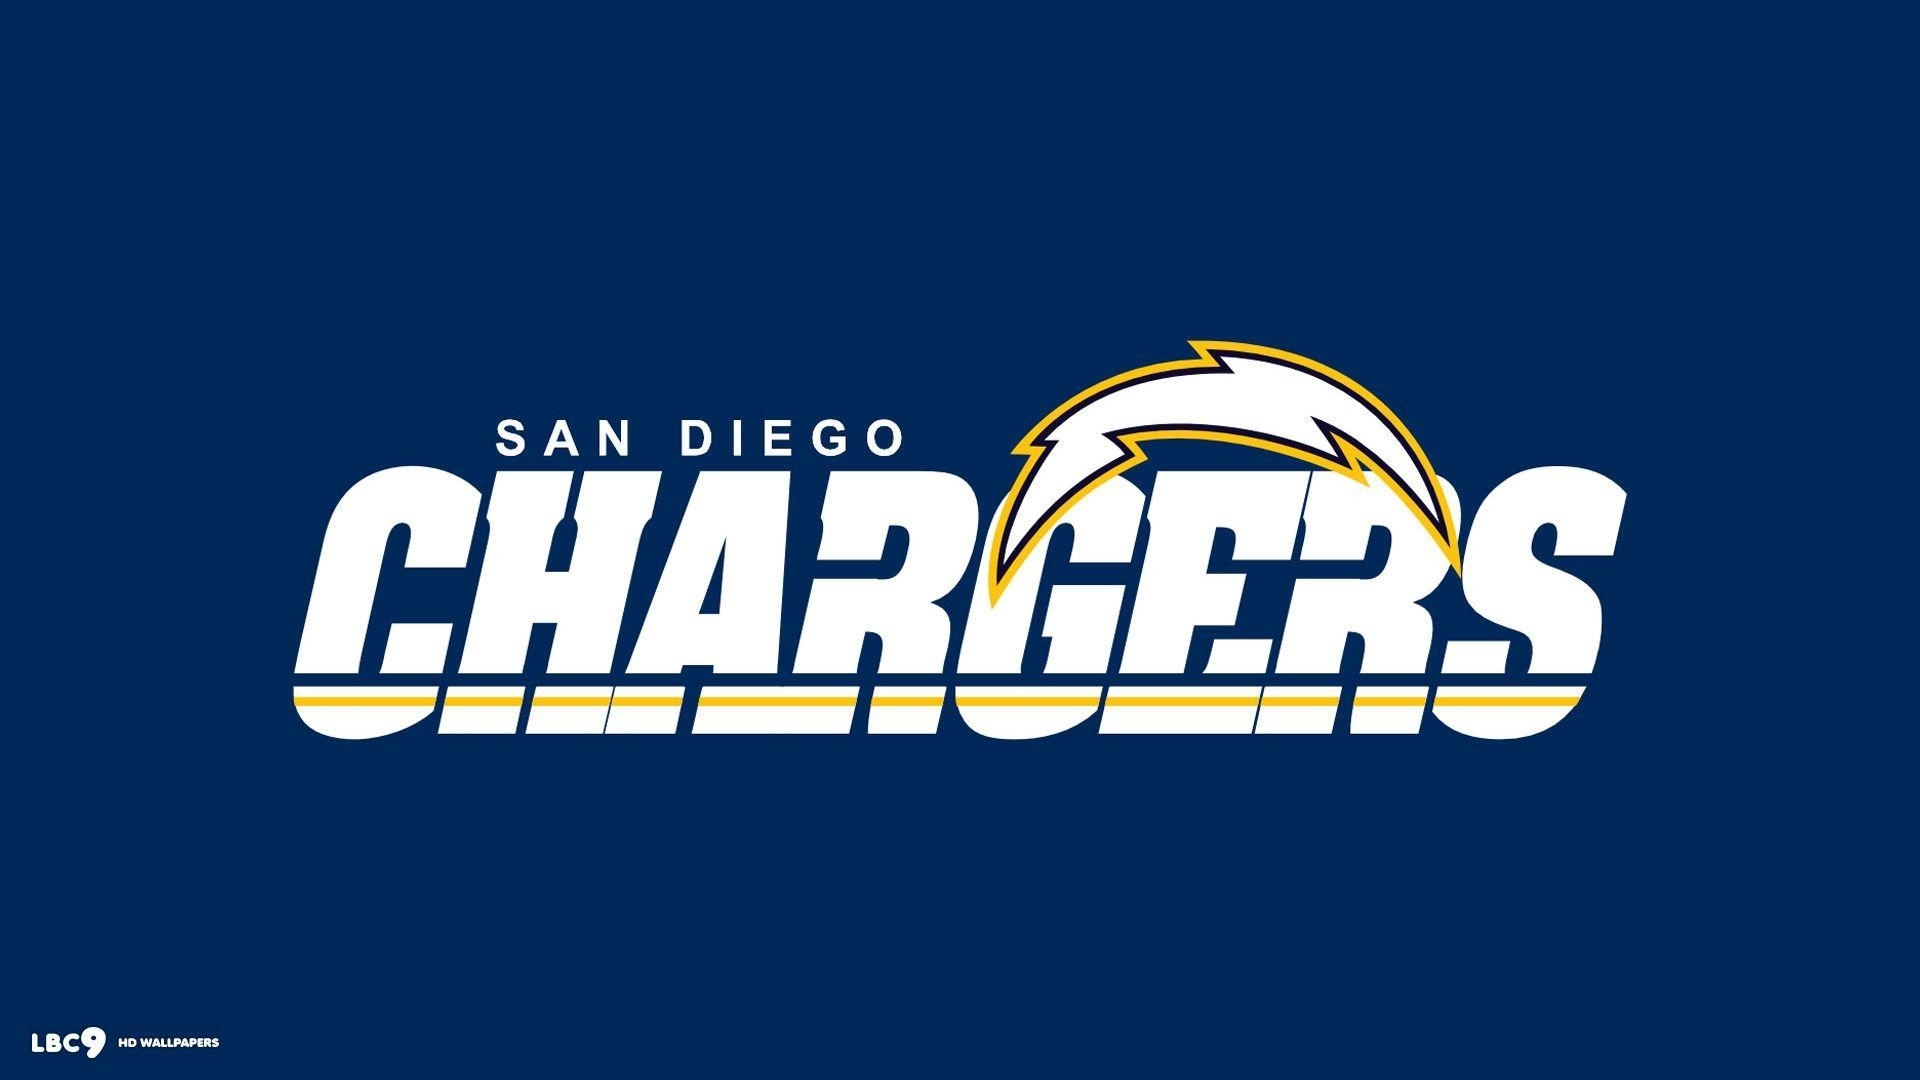 san diego chargers wallpapers - wallpaper cave